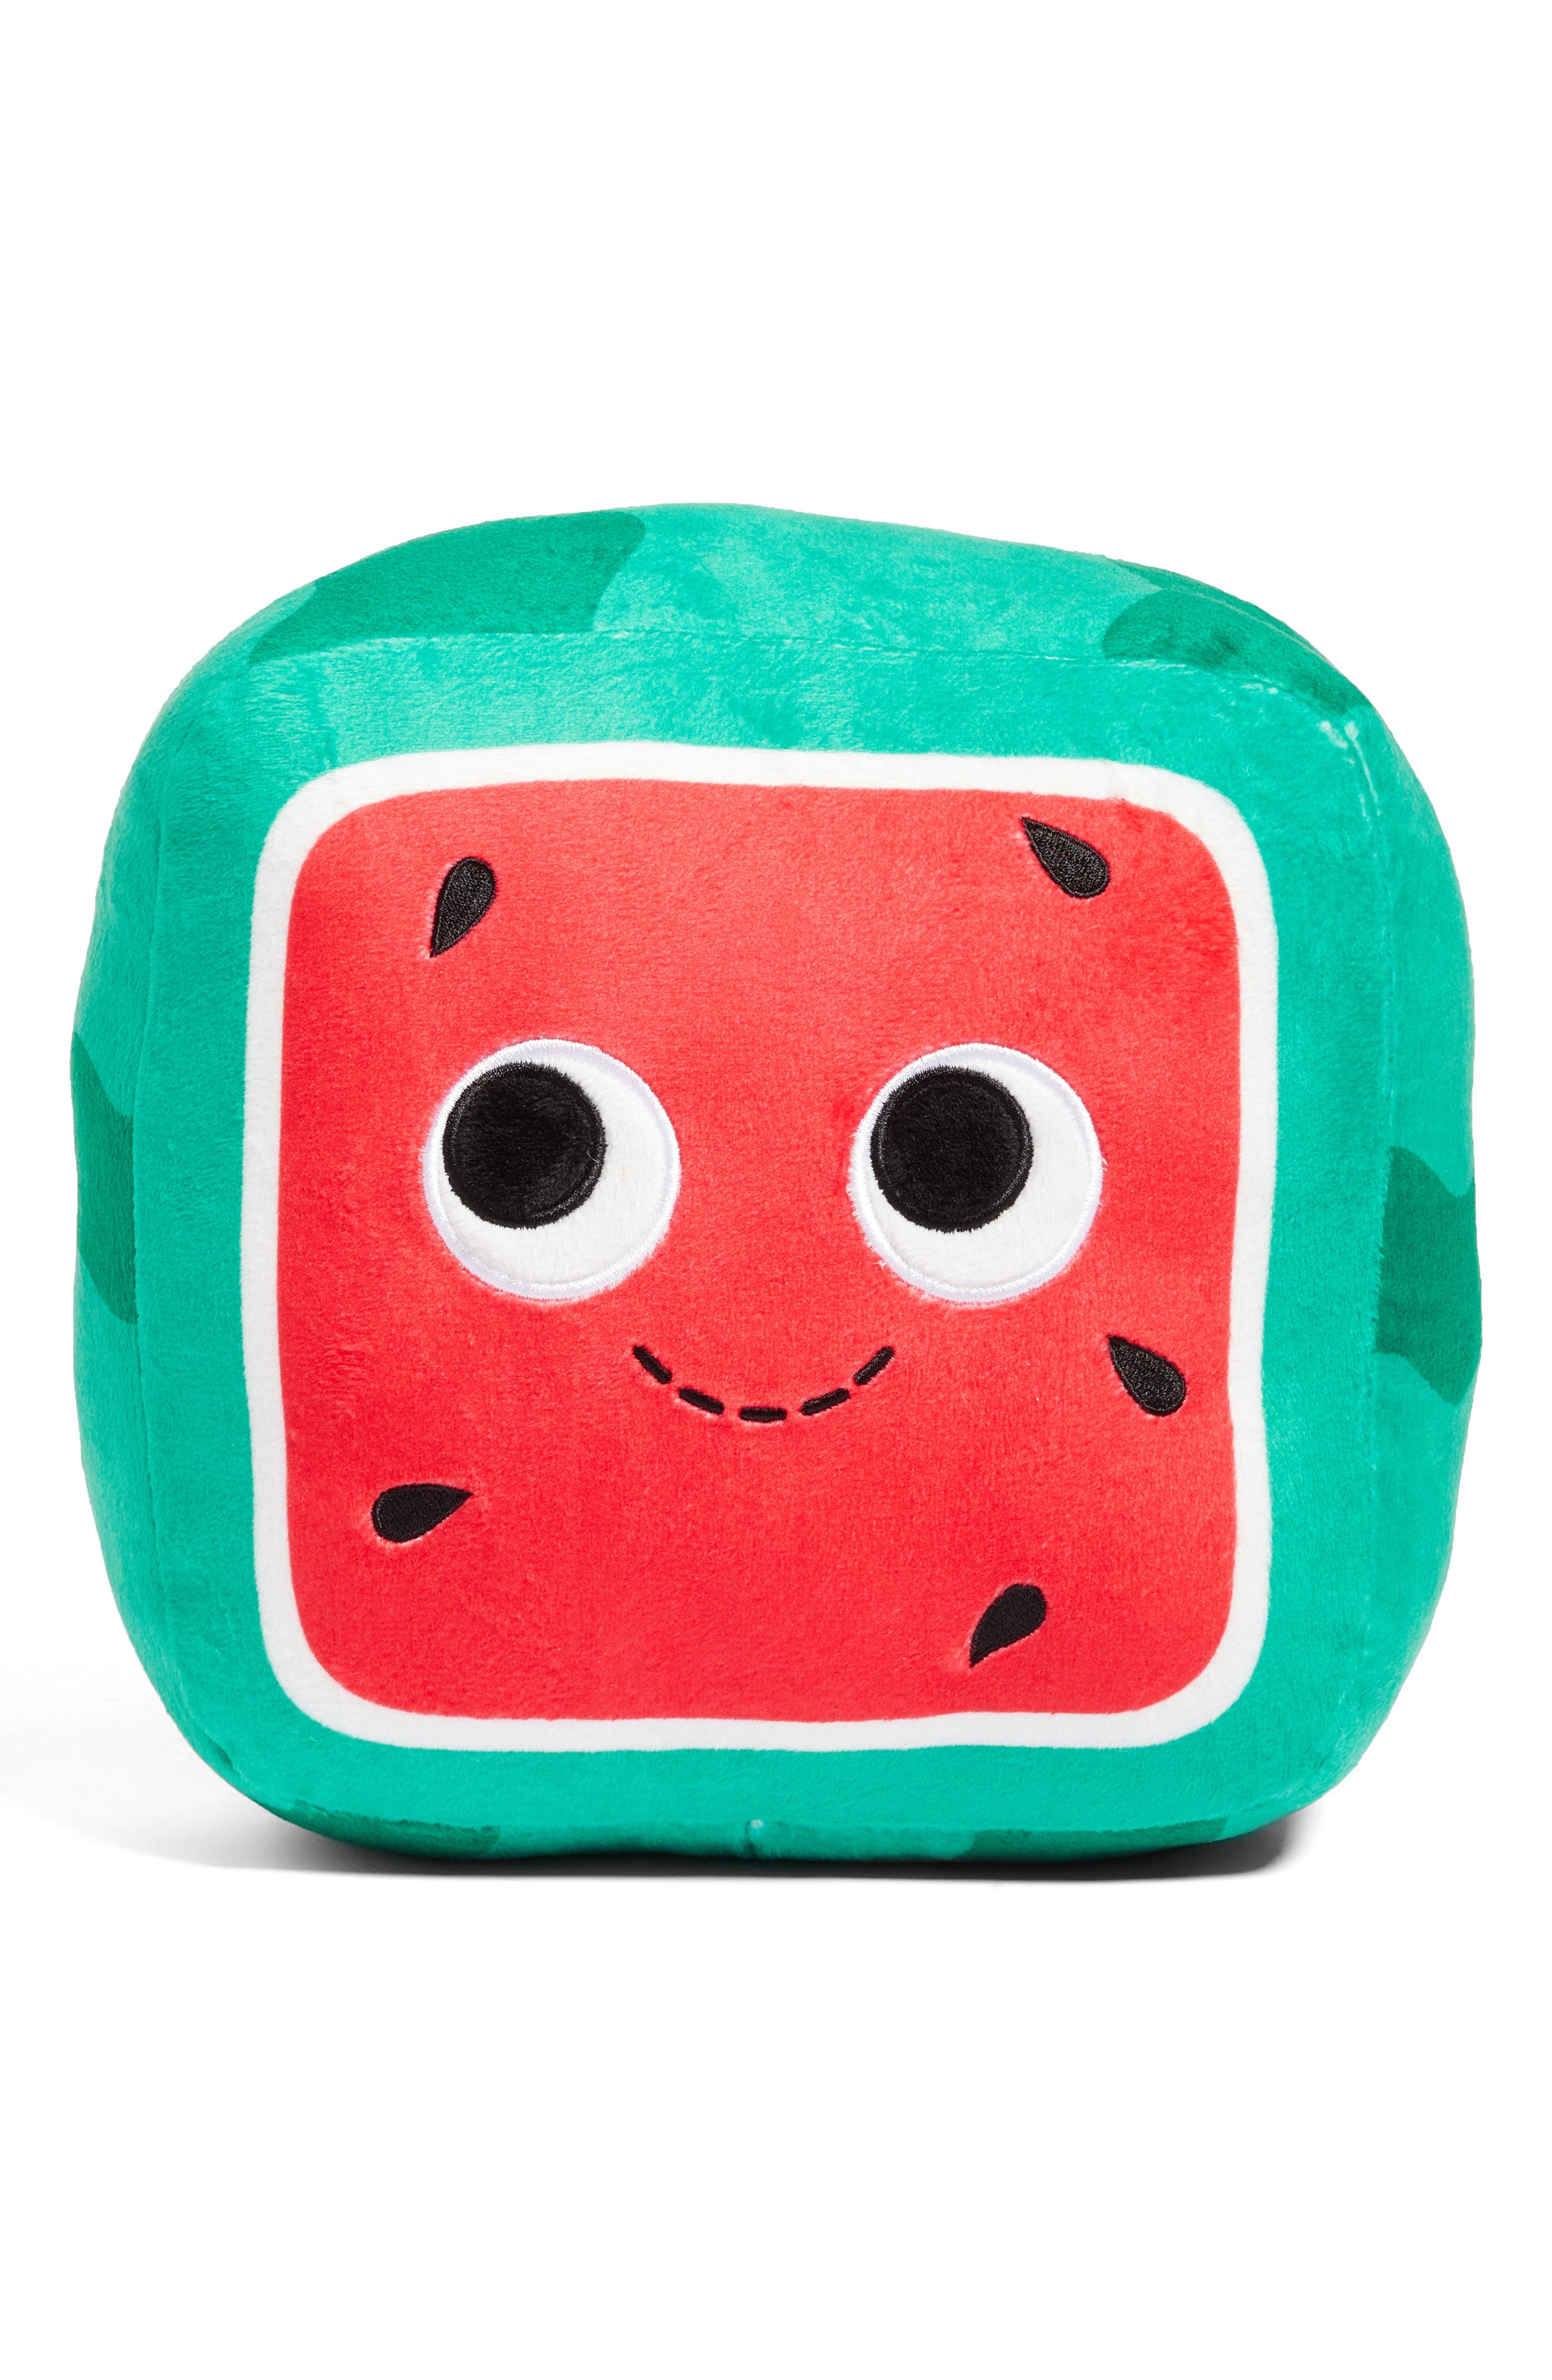 Yummy World Medium Kenji Square Watermelon Plush Toy,                             Main thumbnail 1, color,                             960